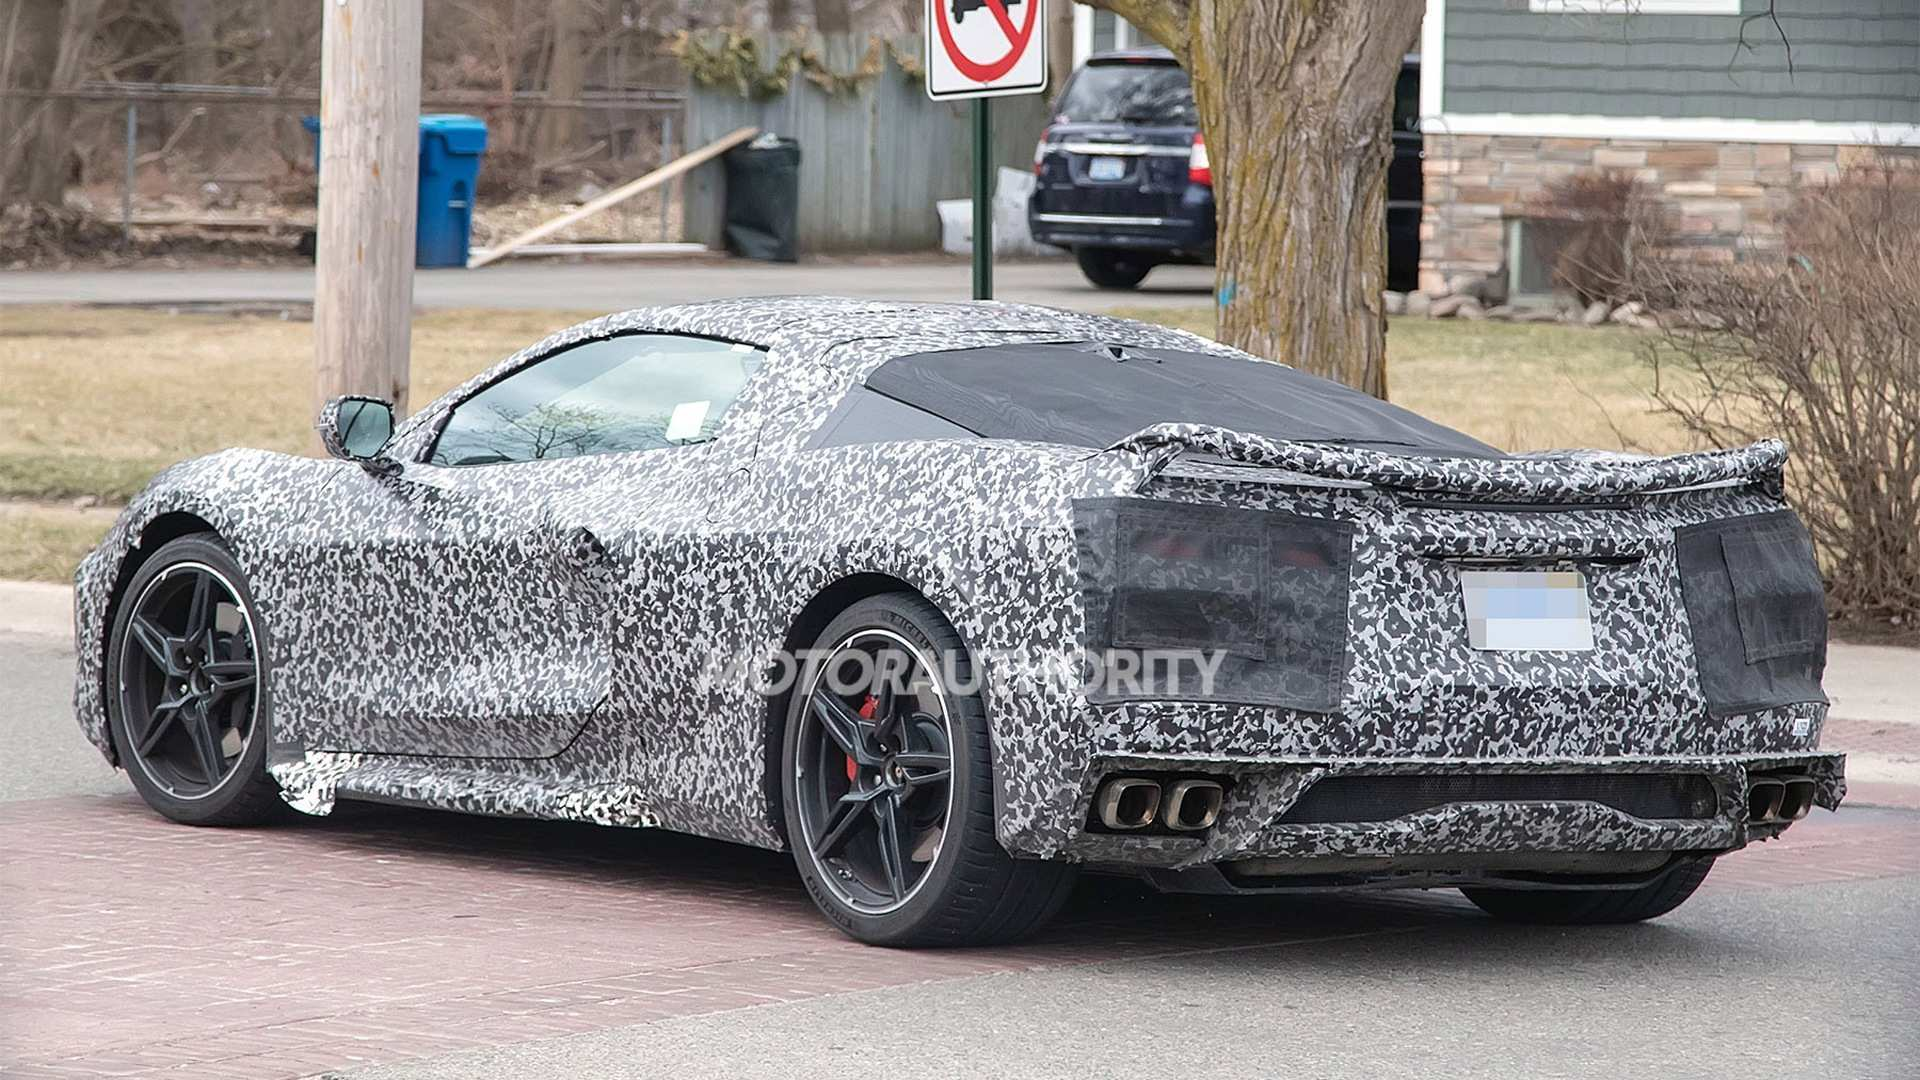 83 The 2020 Chevrolet Corvette Images Price And Review